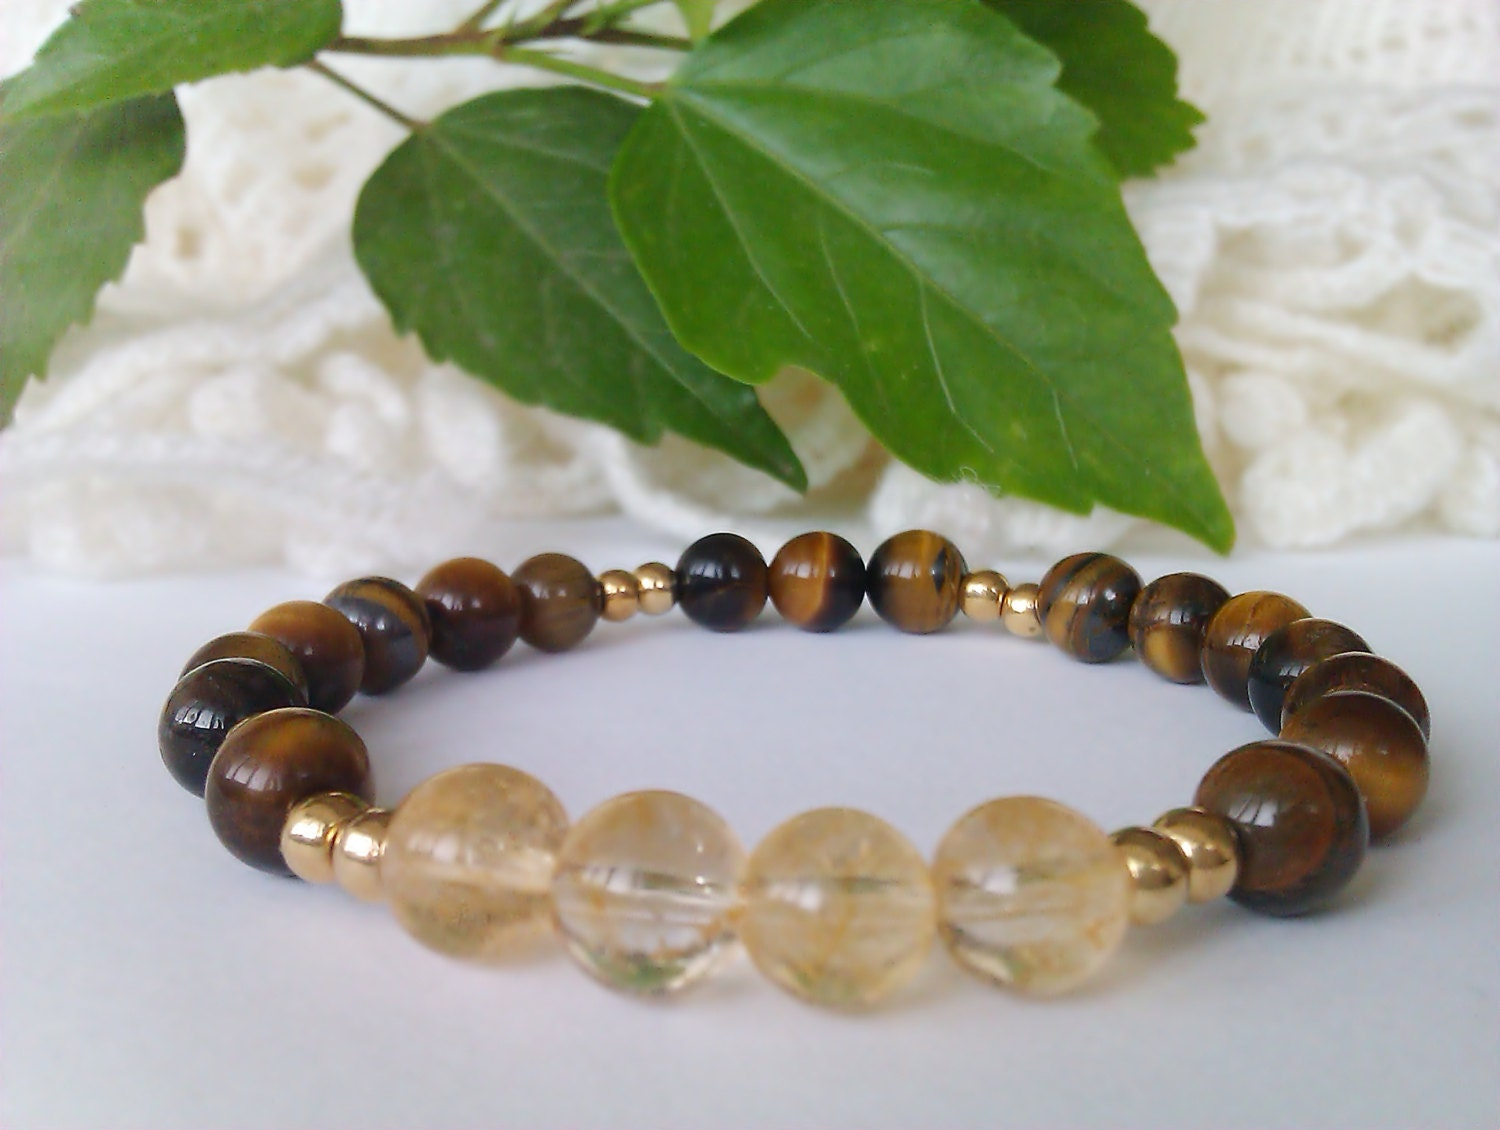 Citrine Bead Bracelet Tiger Eye Bracelet Stretch Gemstone. Beautiful Stud Earrings. Cheap Gold Bracelet. Lover Pendant. Kids Lockets. 10mm Bead Bracelet. Diamond Accent Stud Earrings. Colored Bands. Natural Peridot Rings